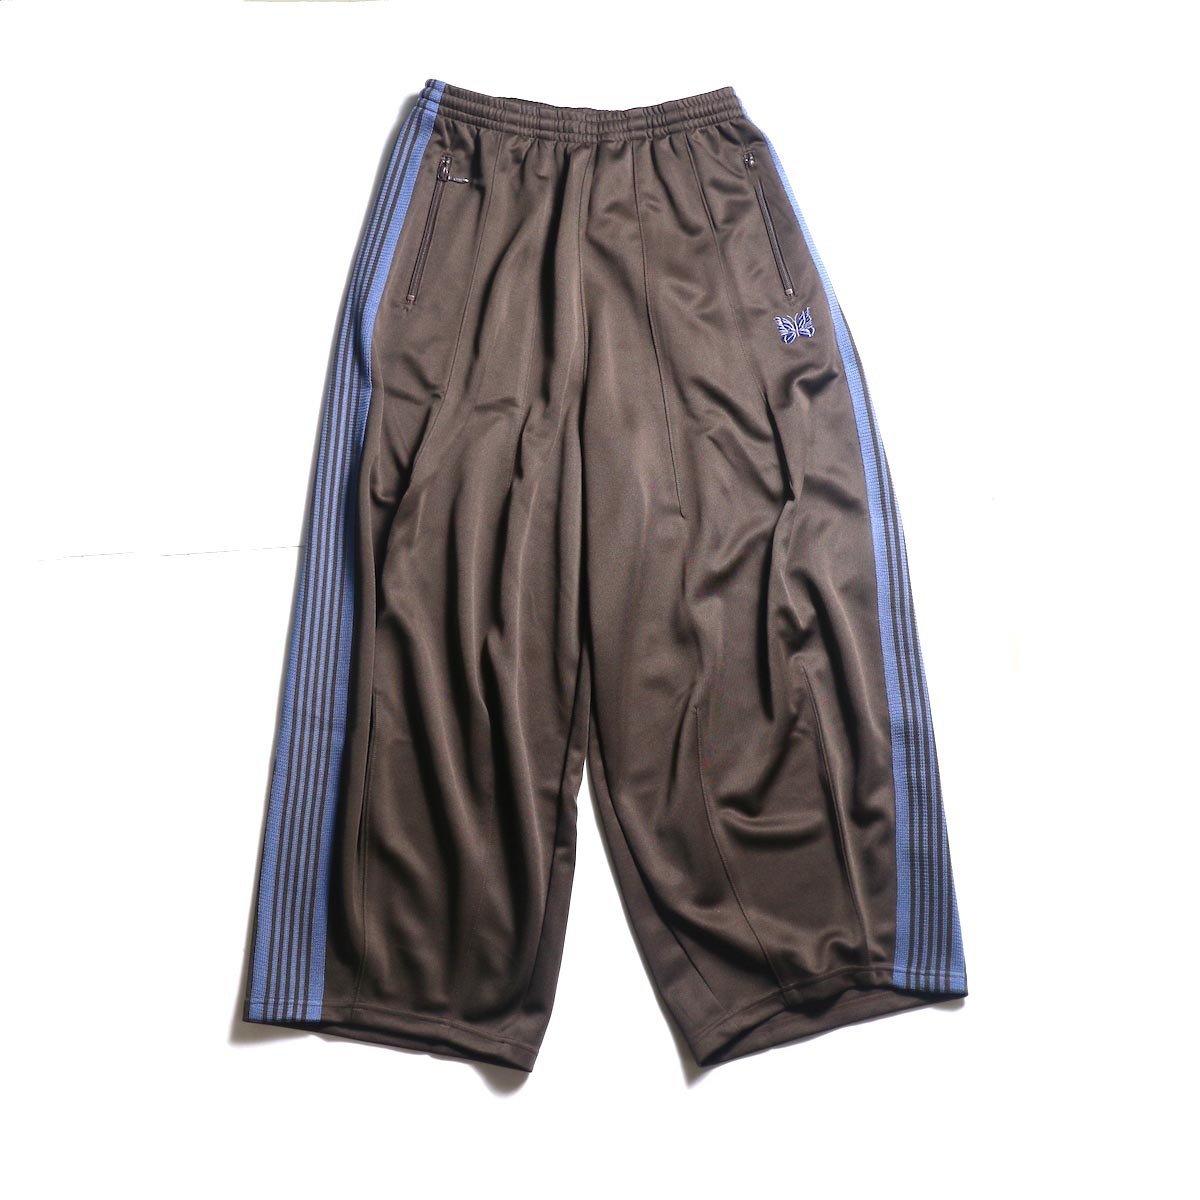 Needles / H.D. TRACK PANT - POLY SMOOTH (Brown)